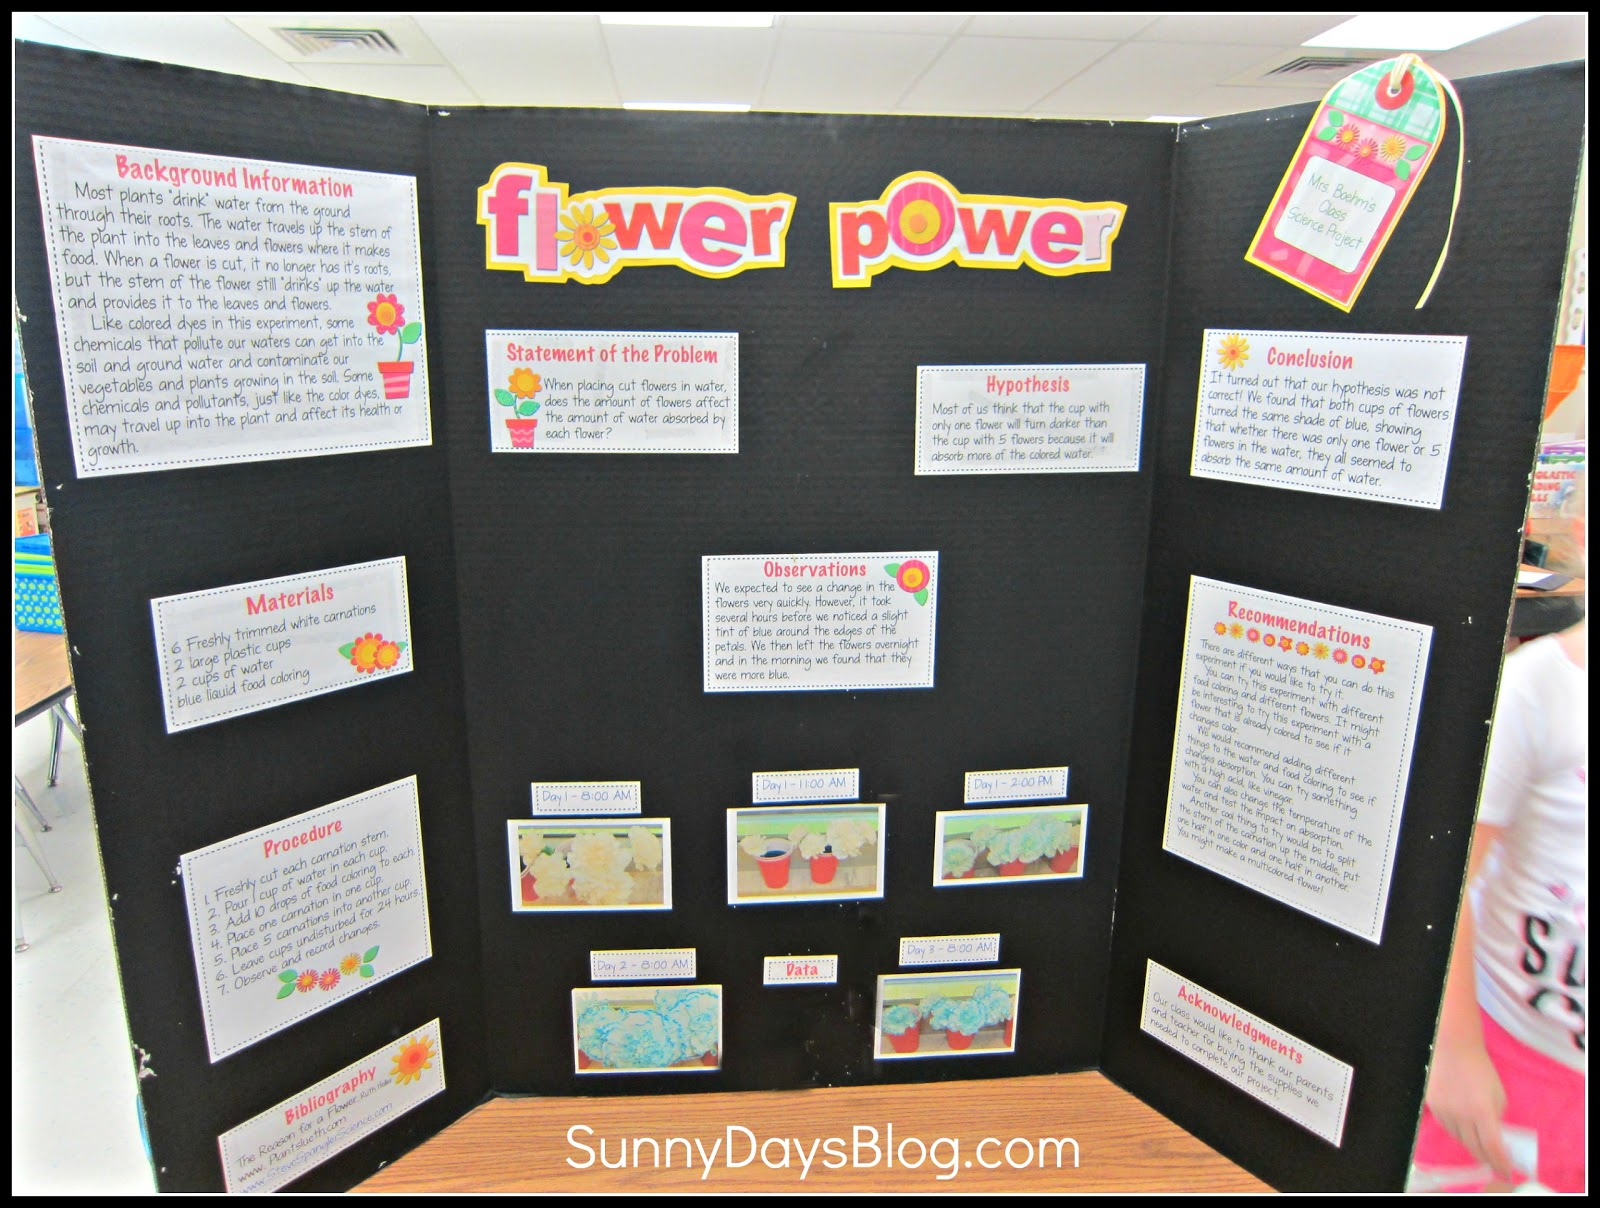 Science Fair Project Folders to Organize Research & Reports